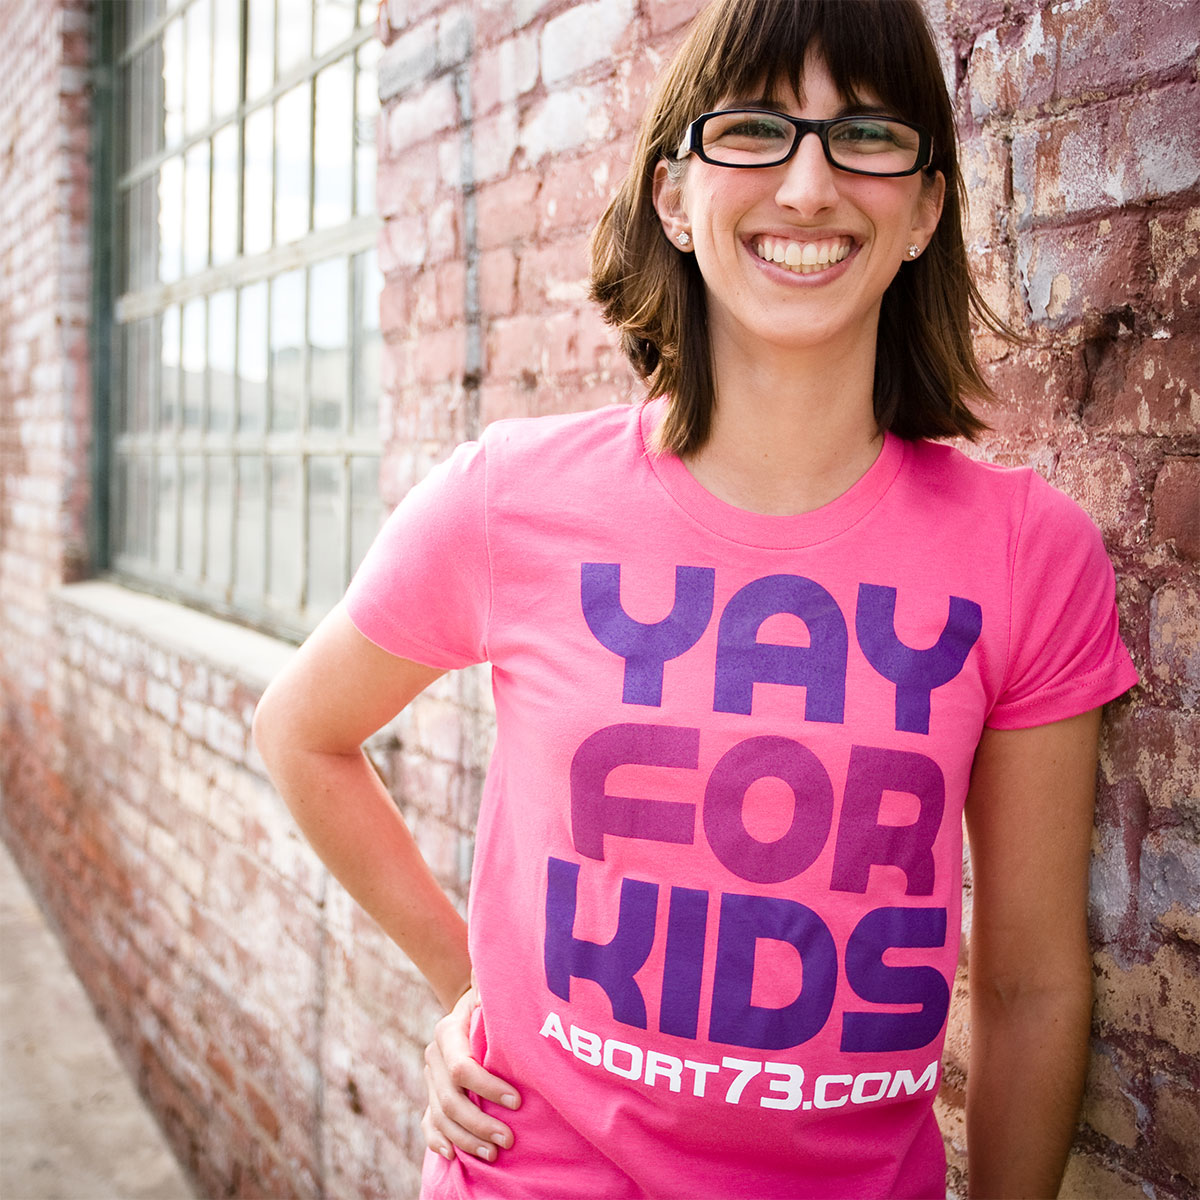 Yay for Kids (Abort73 Girls T-shirt)